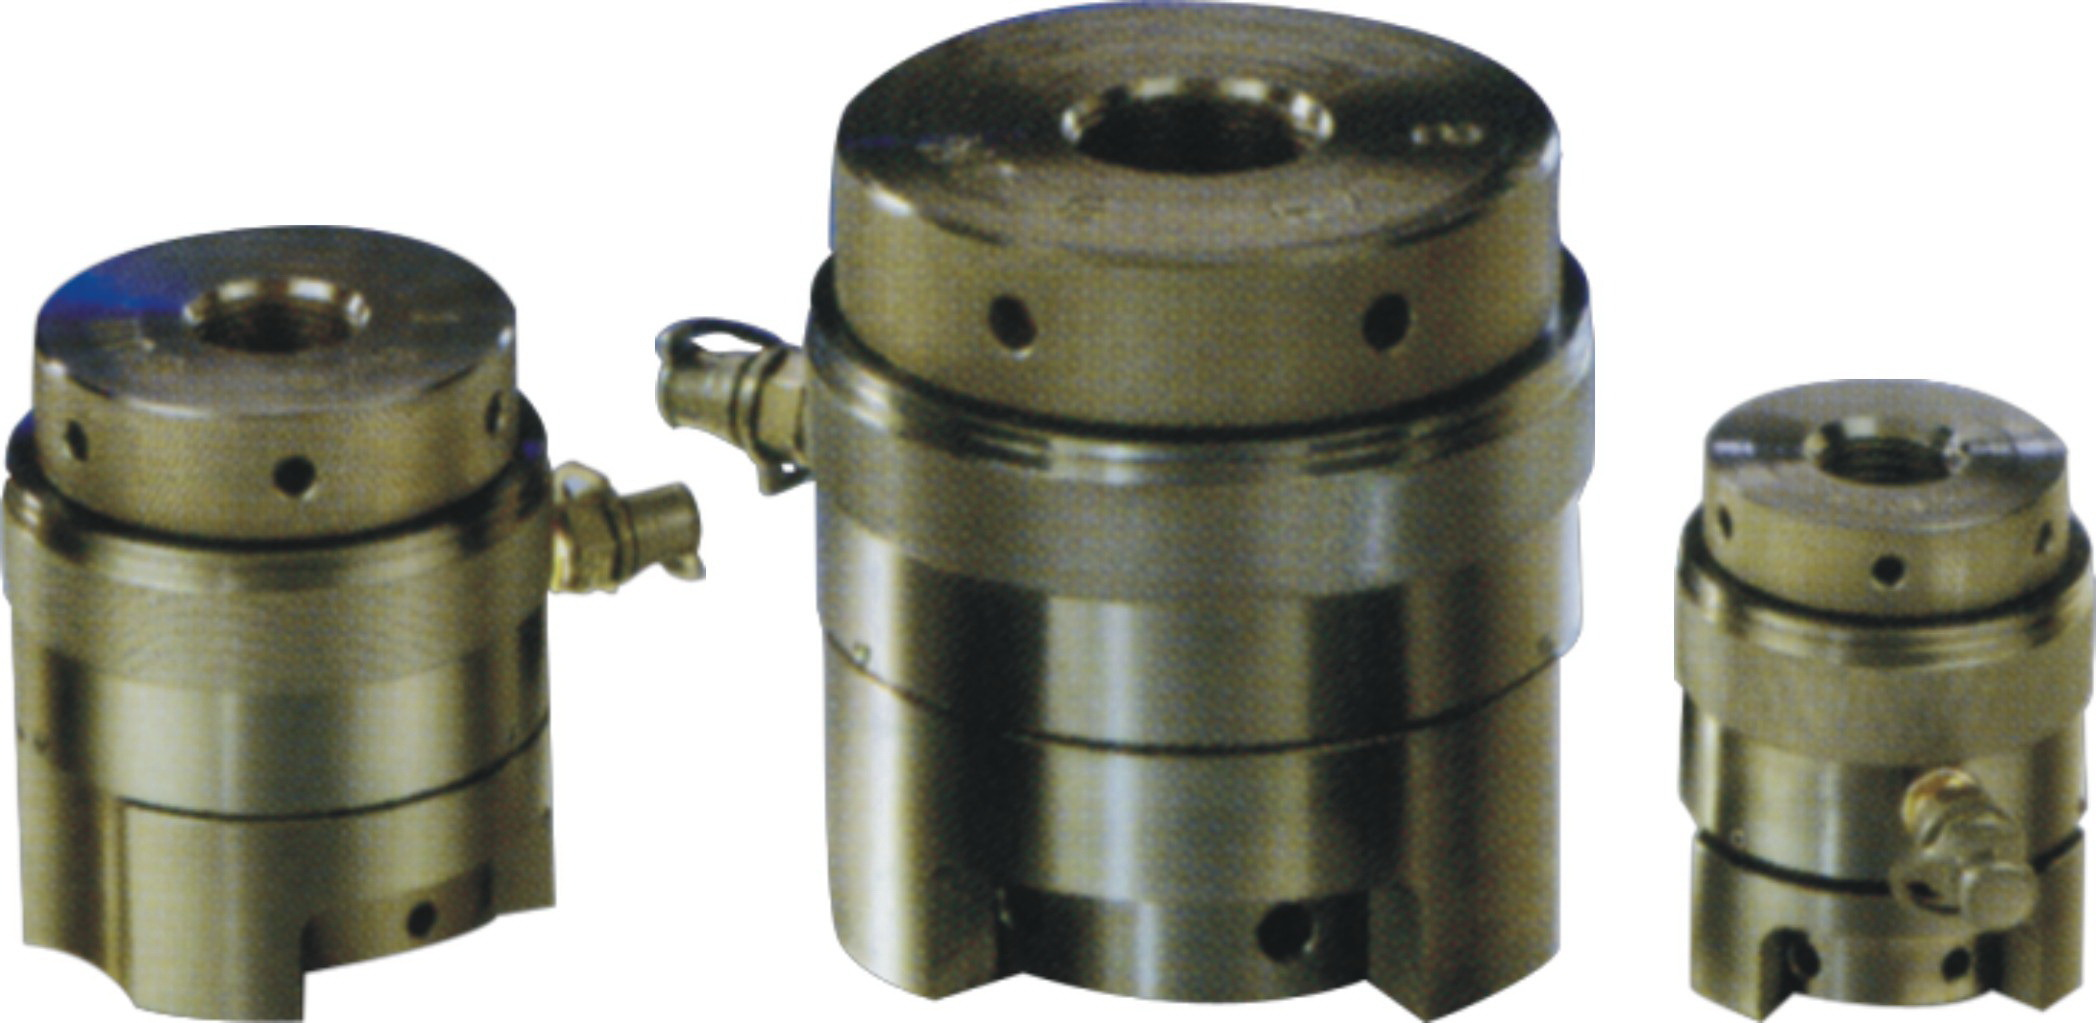 Hydraulic Bolt Tensioner for Industrial Device Use